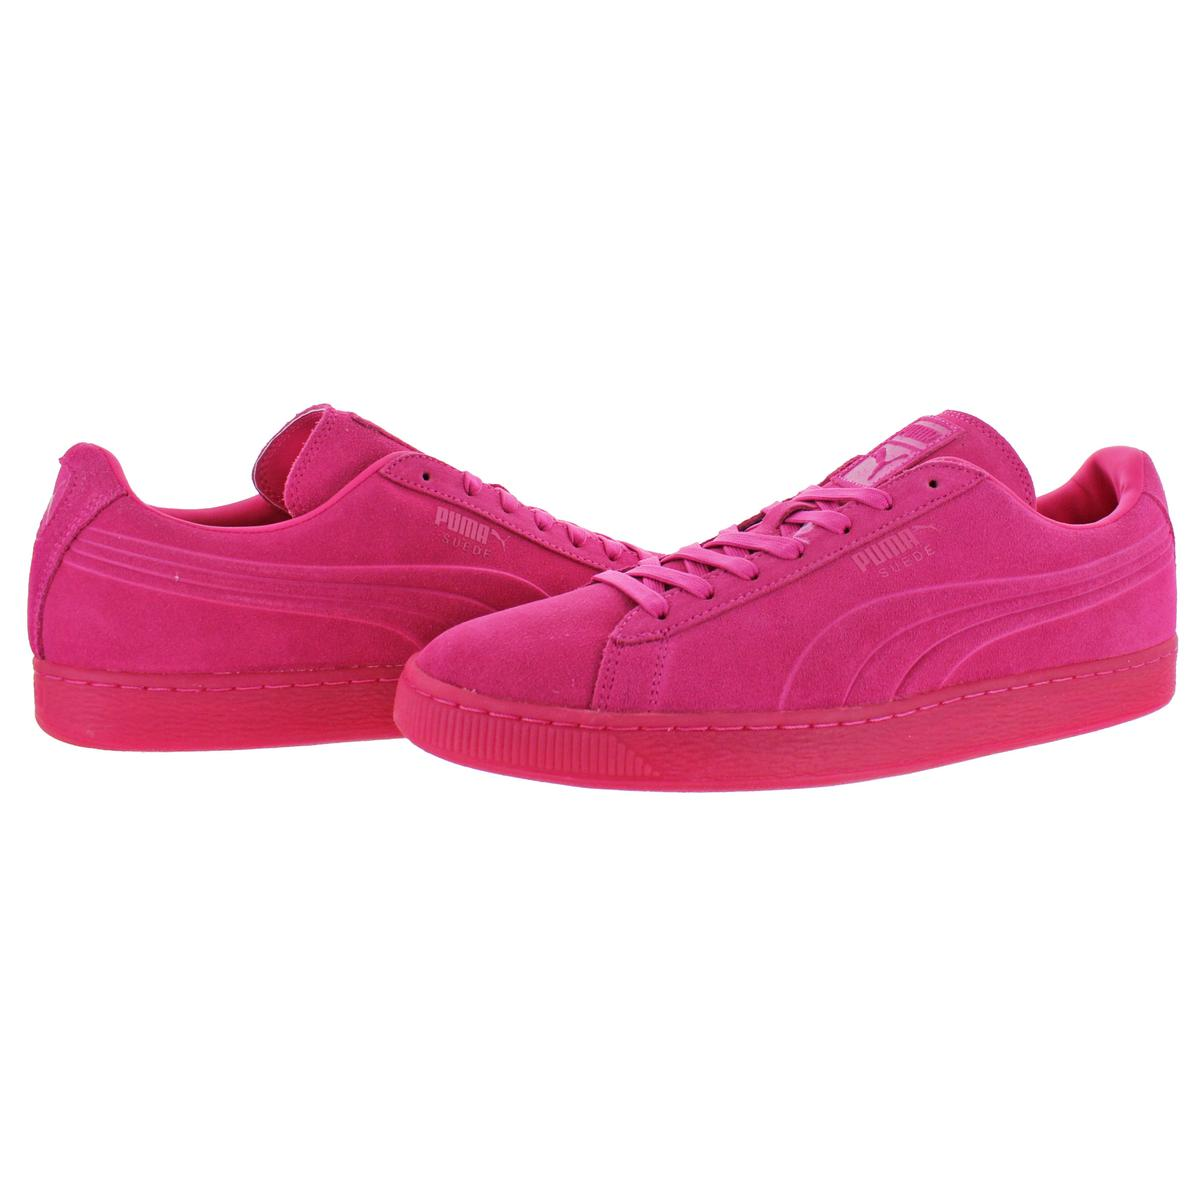 Puma-Suede-Classic-Men-039-s-Fashion-Sneakers-Shoes thumbnail 4